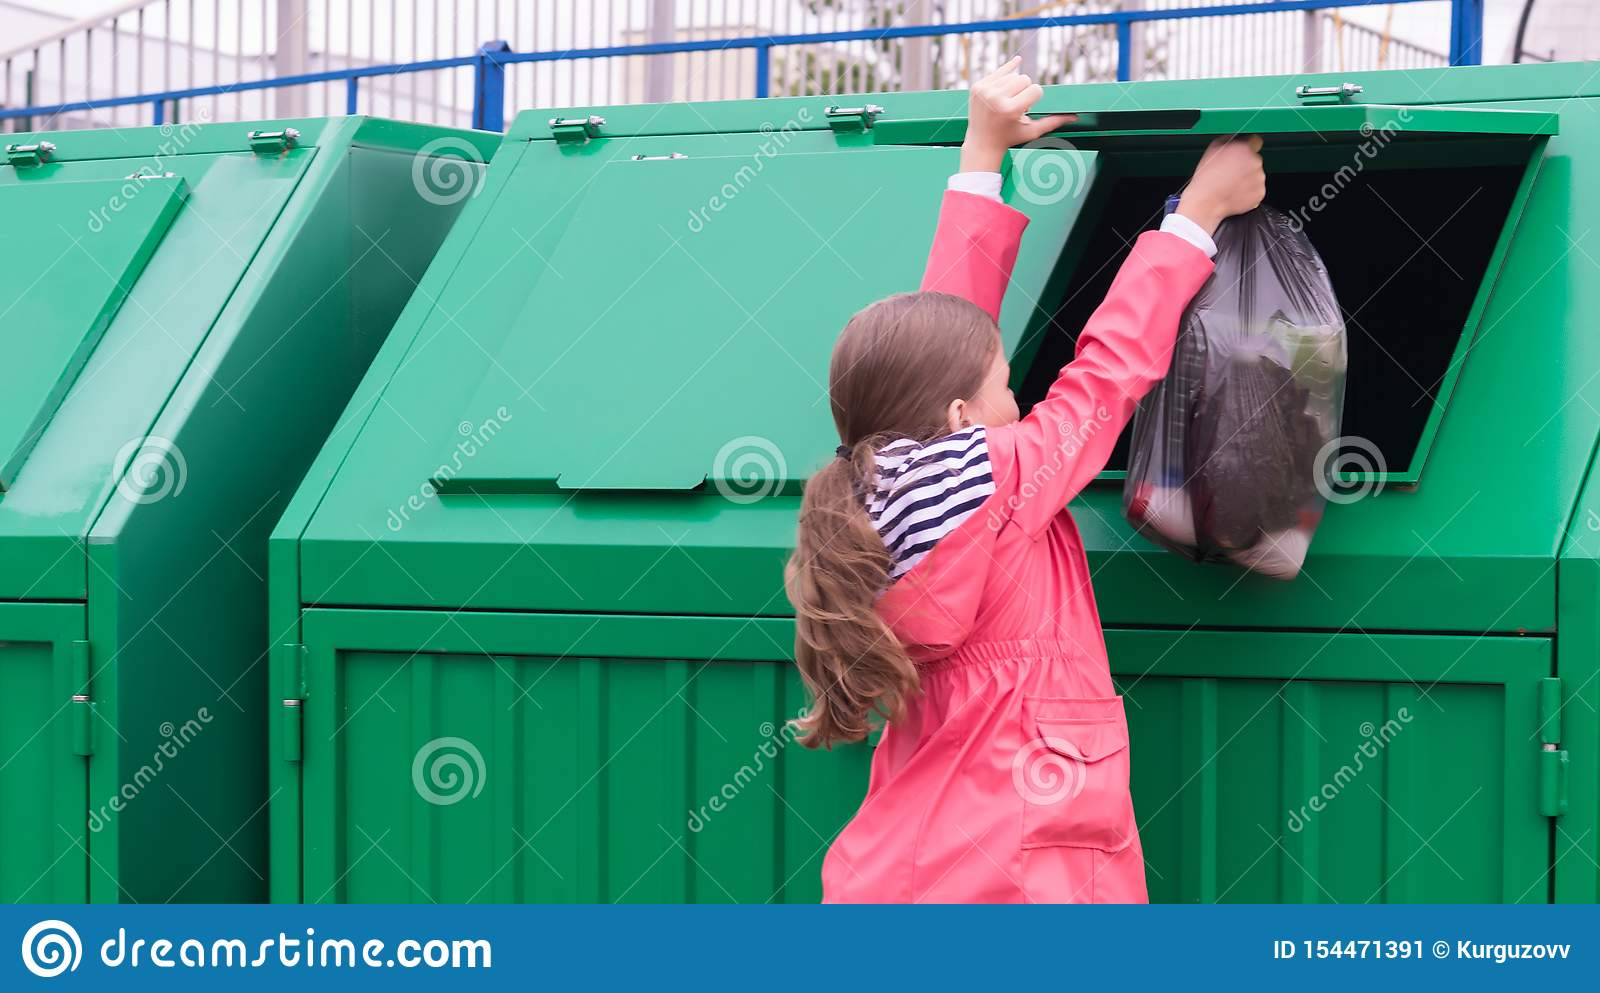 The girl opened the dumpster to vibrate the waste bag